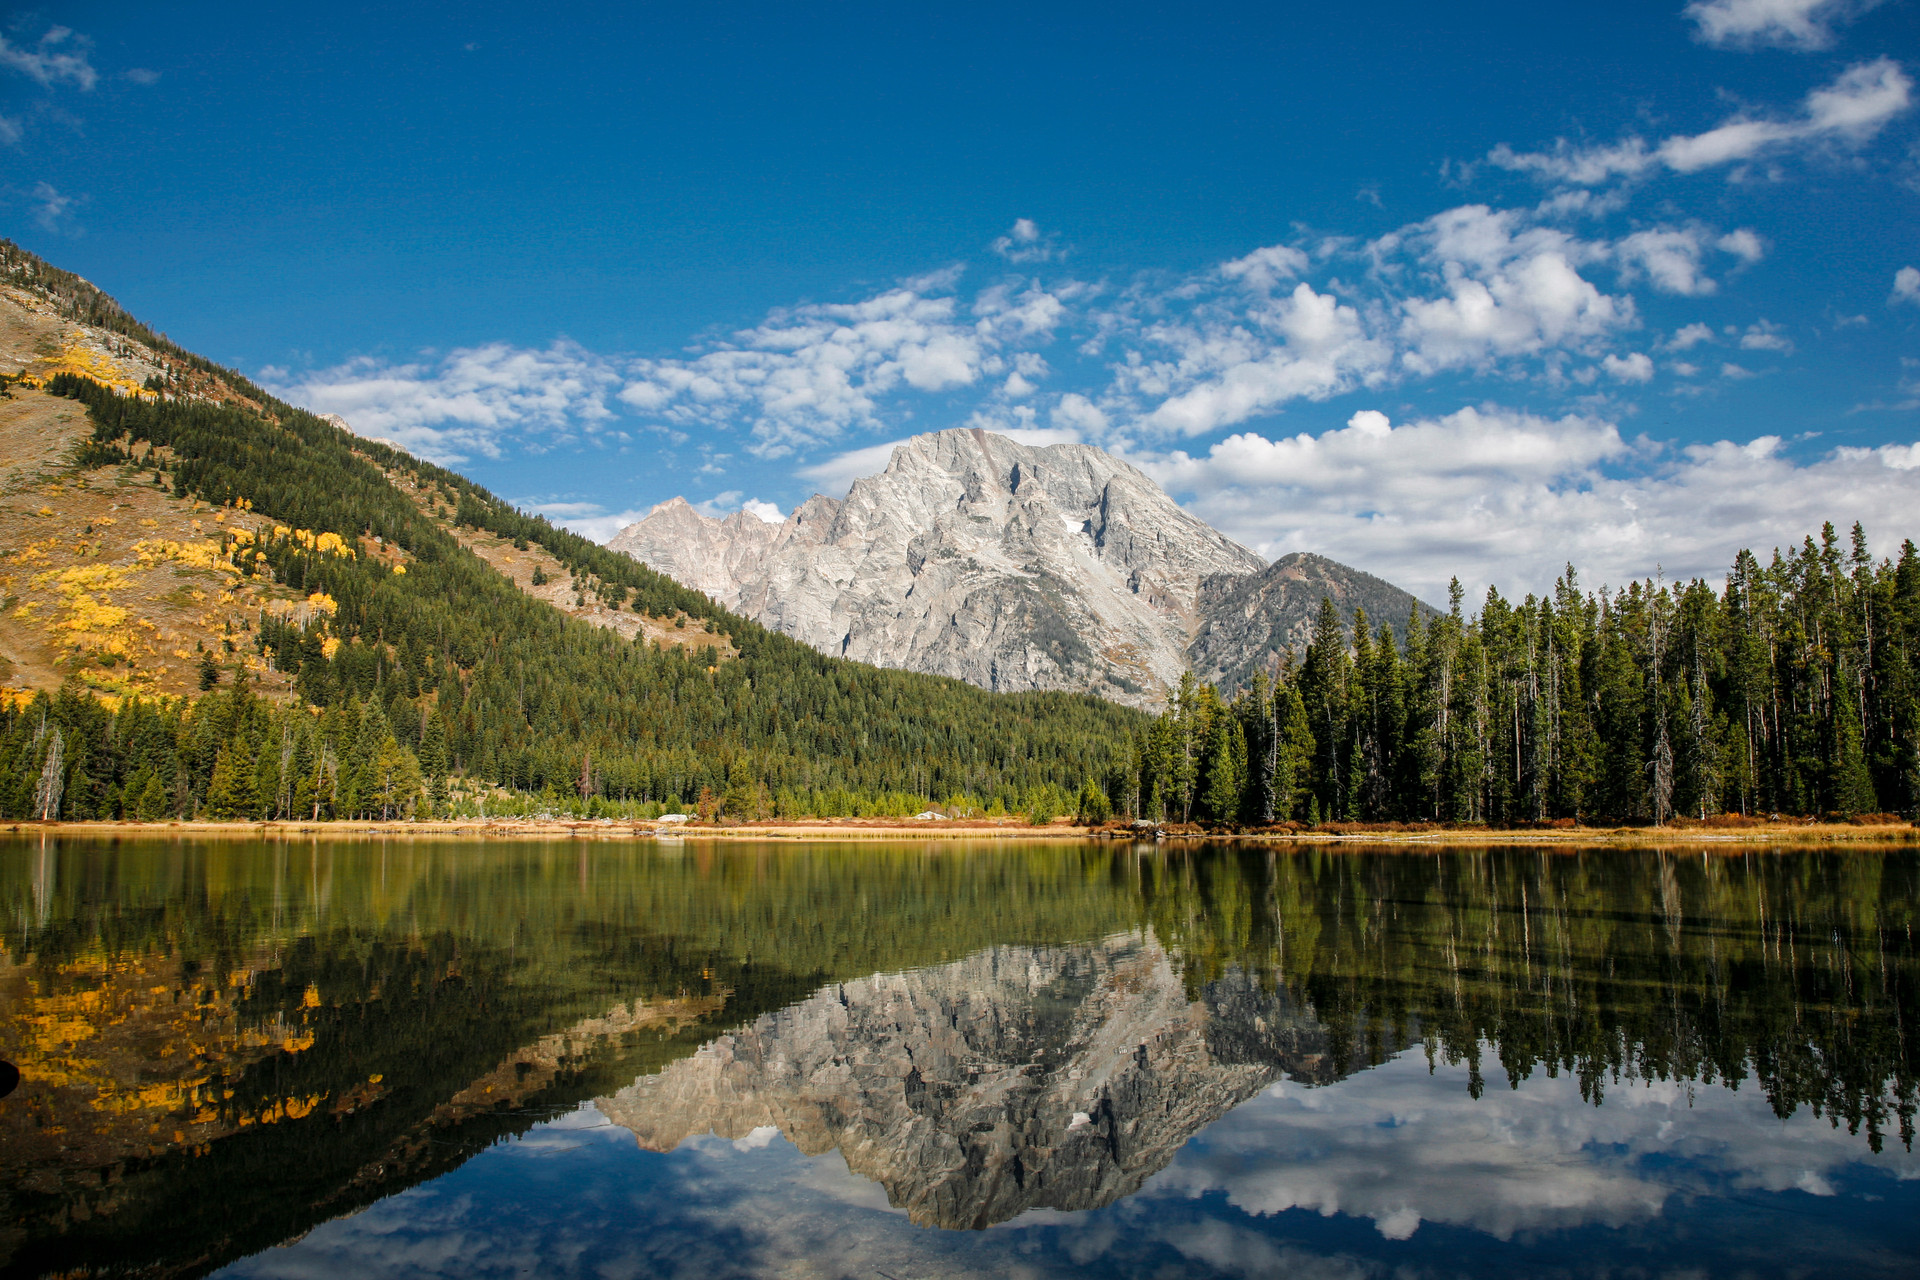 Mt. Moran and the Tetons reflected in Jackson Lake, Wy